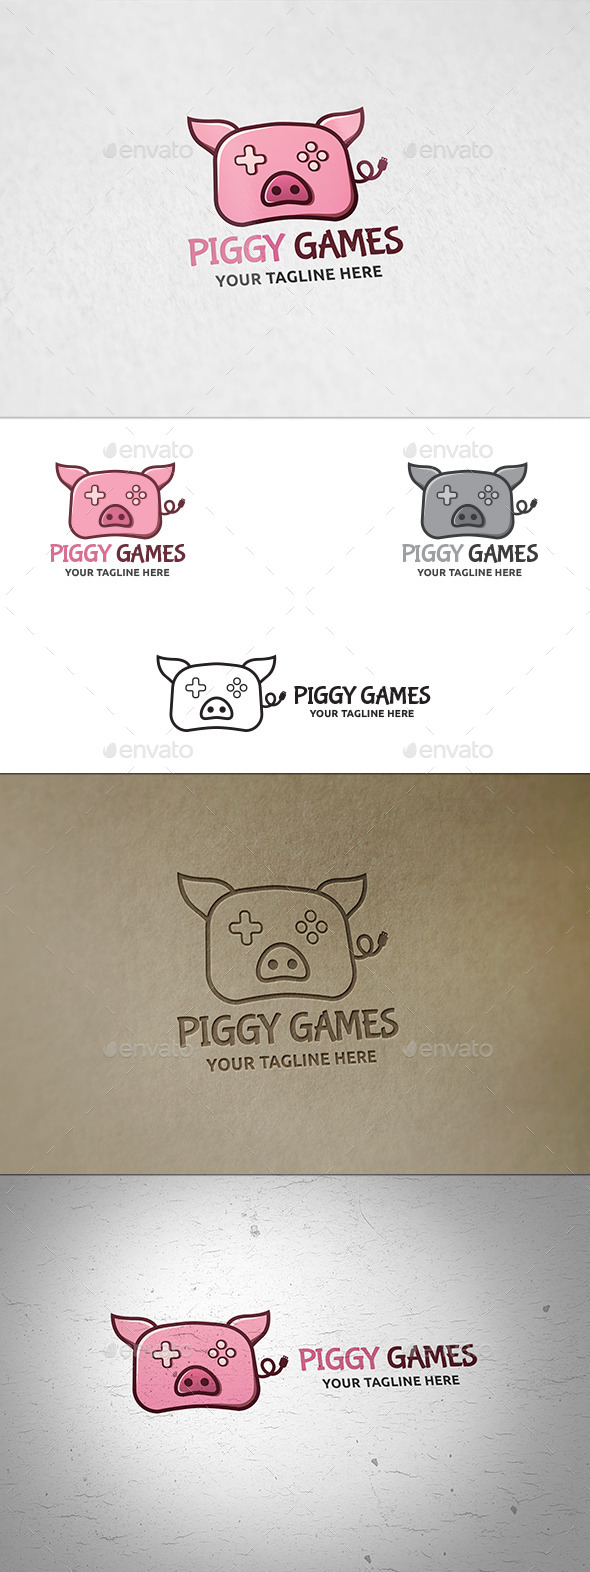 Piggy Games Logo Template